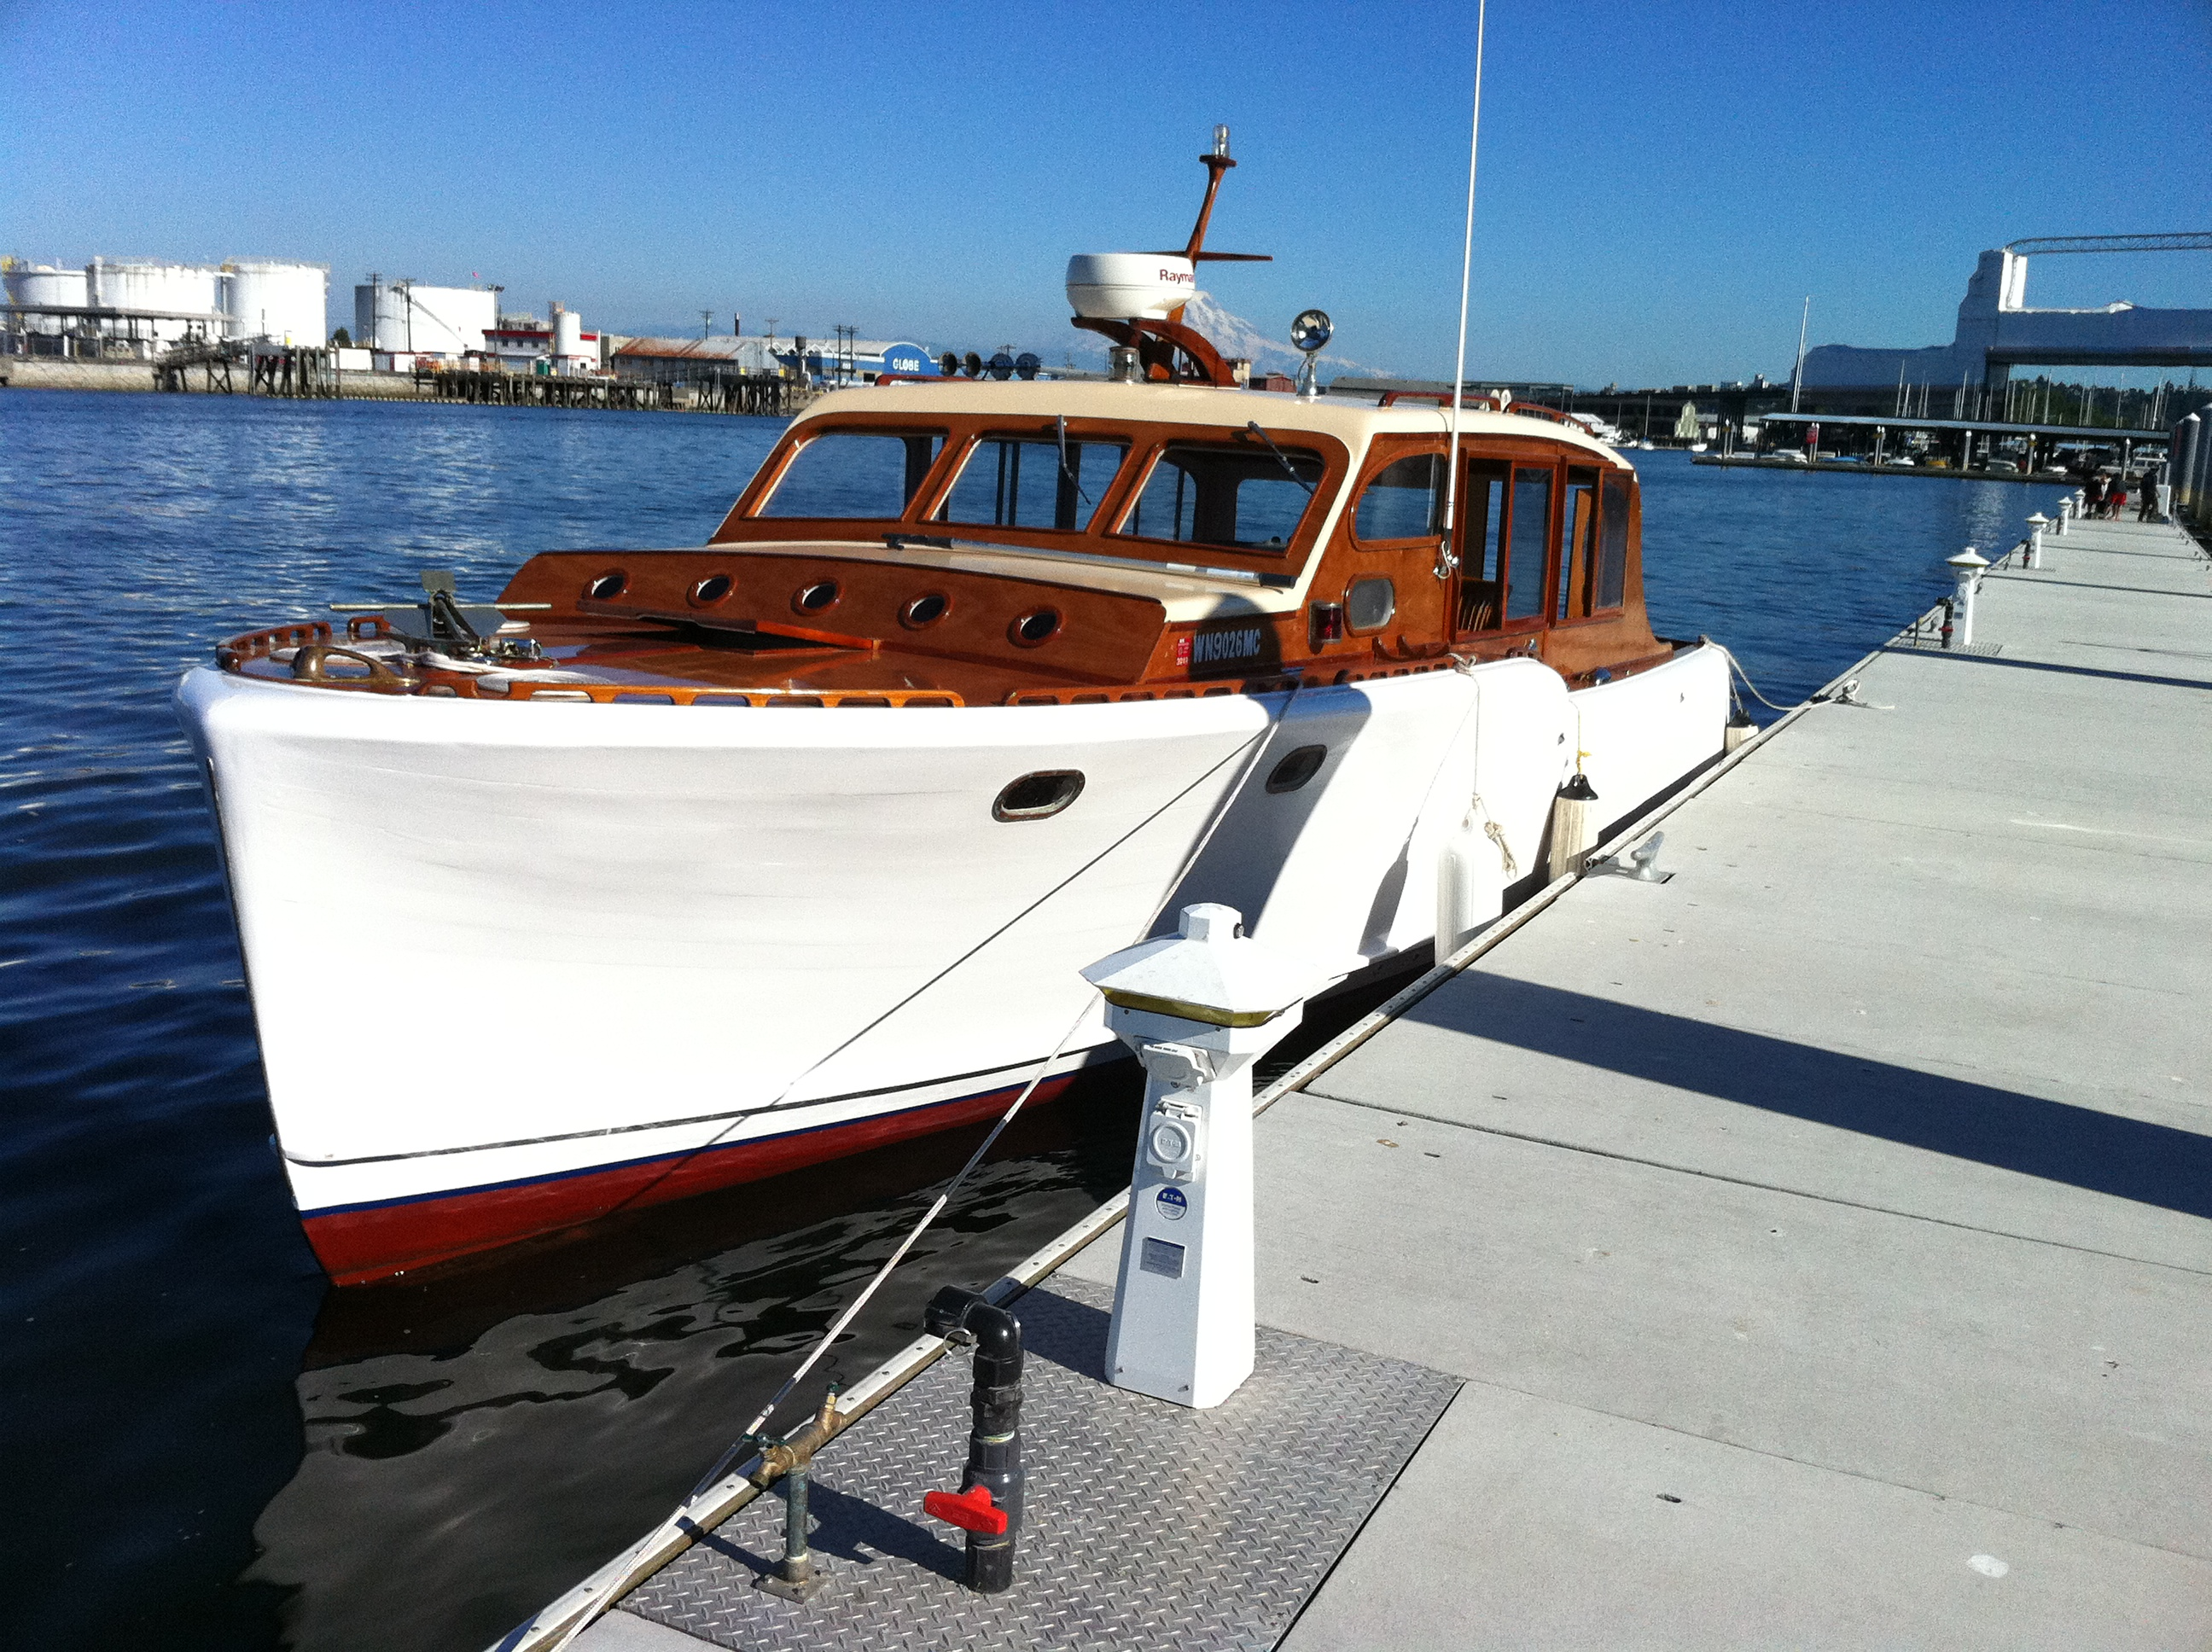 30\' LOA, 9 tons max. displacement, cruise 9 knots at 75% power. Less than one gallon per hour at 75%, top speed 12 knots. 8\' Avon tender.